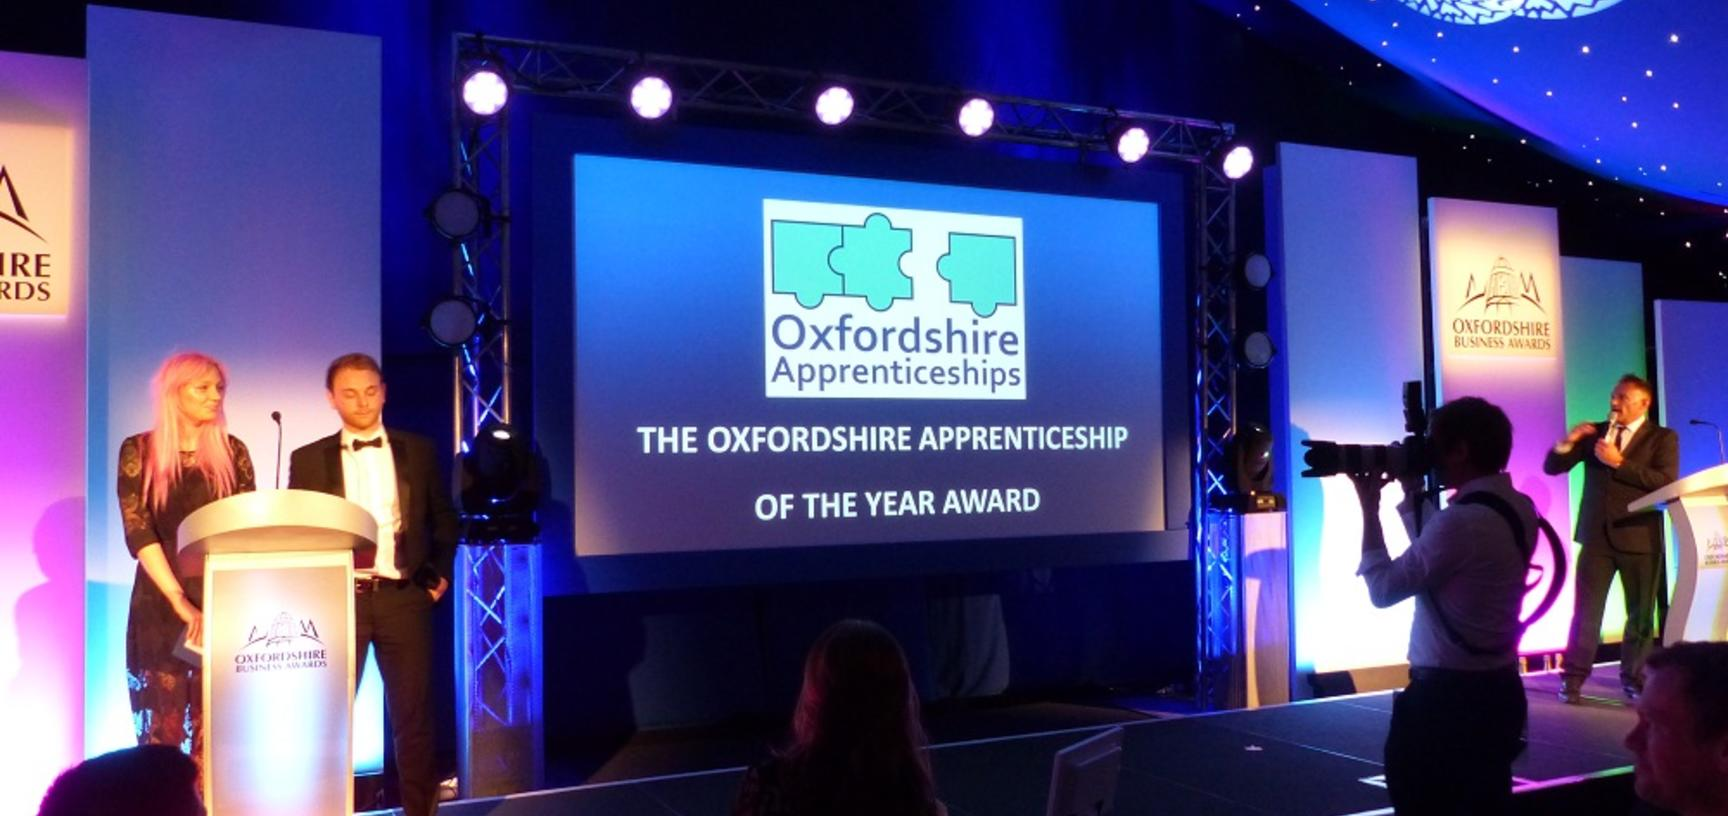 University of Oxford apprentice, Sophie, on stage at the Oxfordshire Apprenticeship Awards 2018